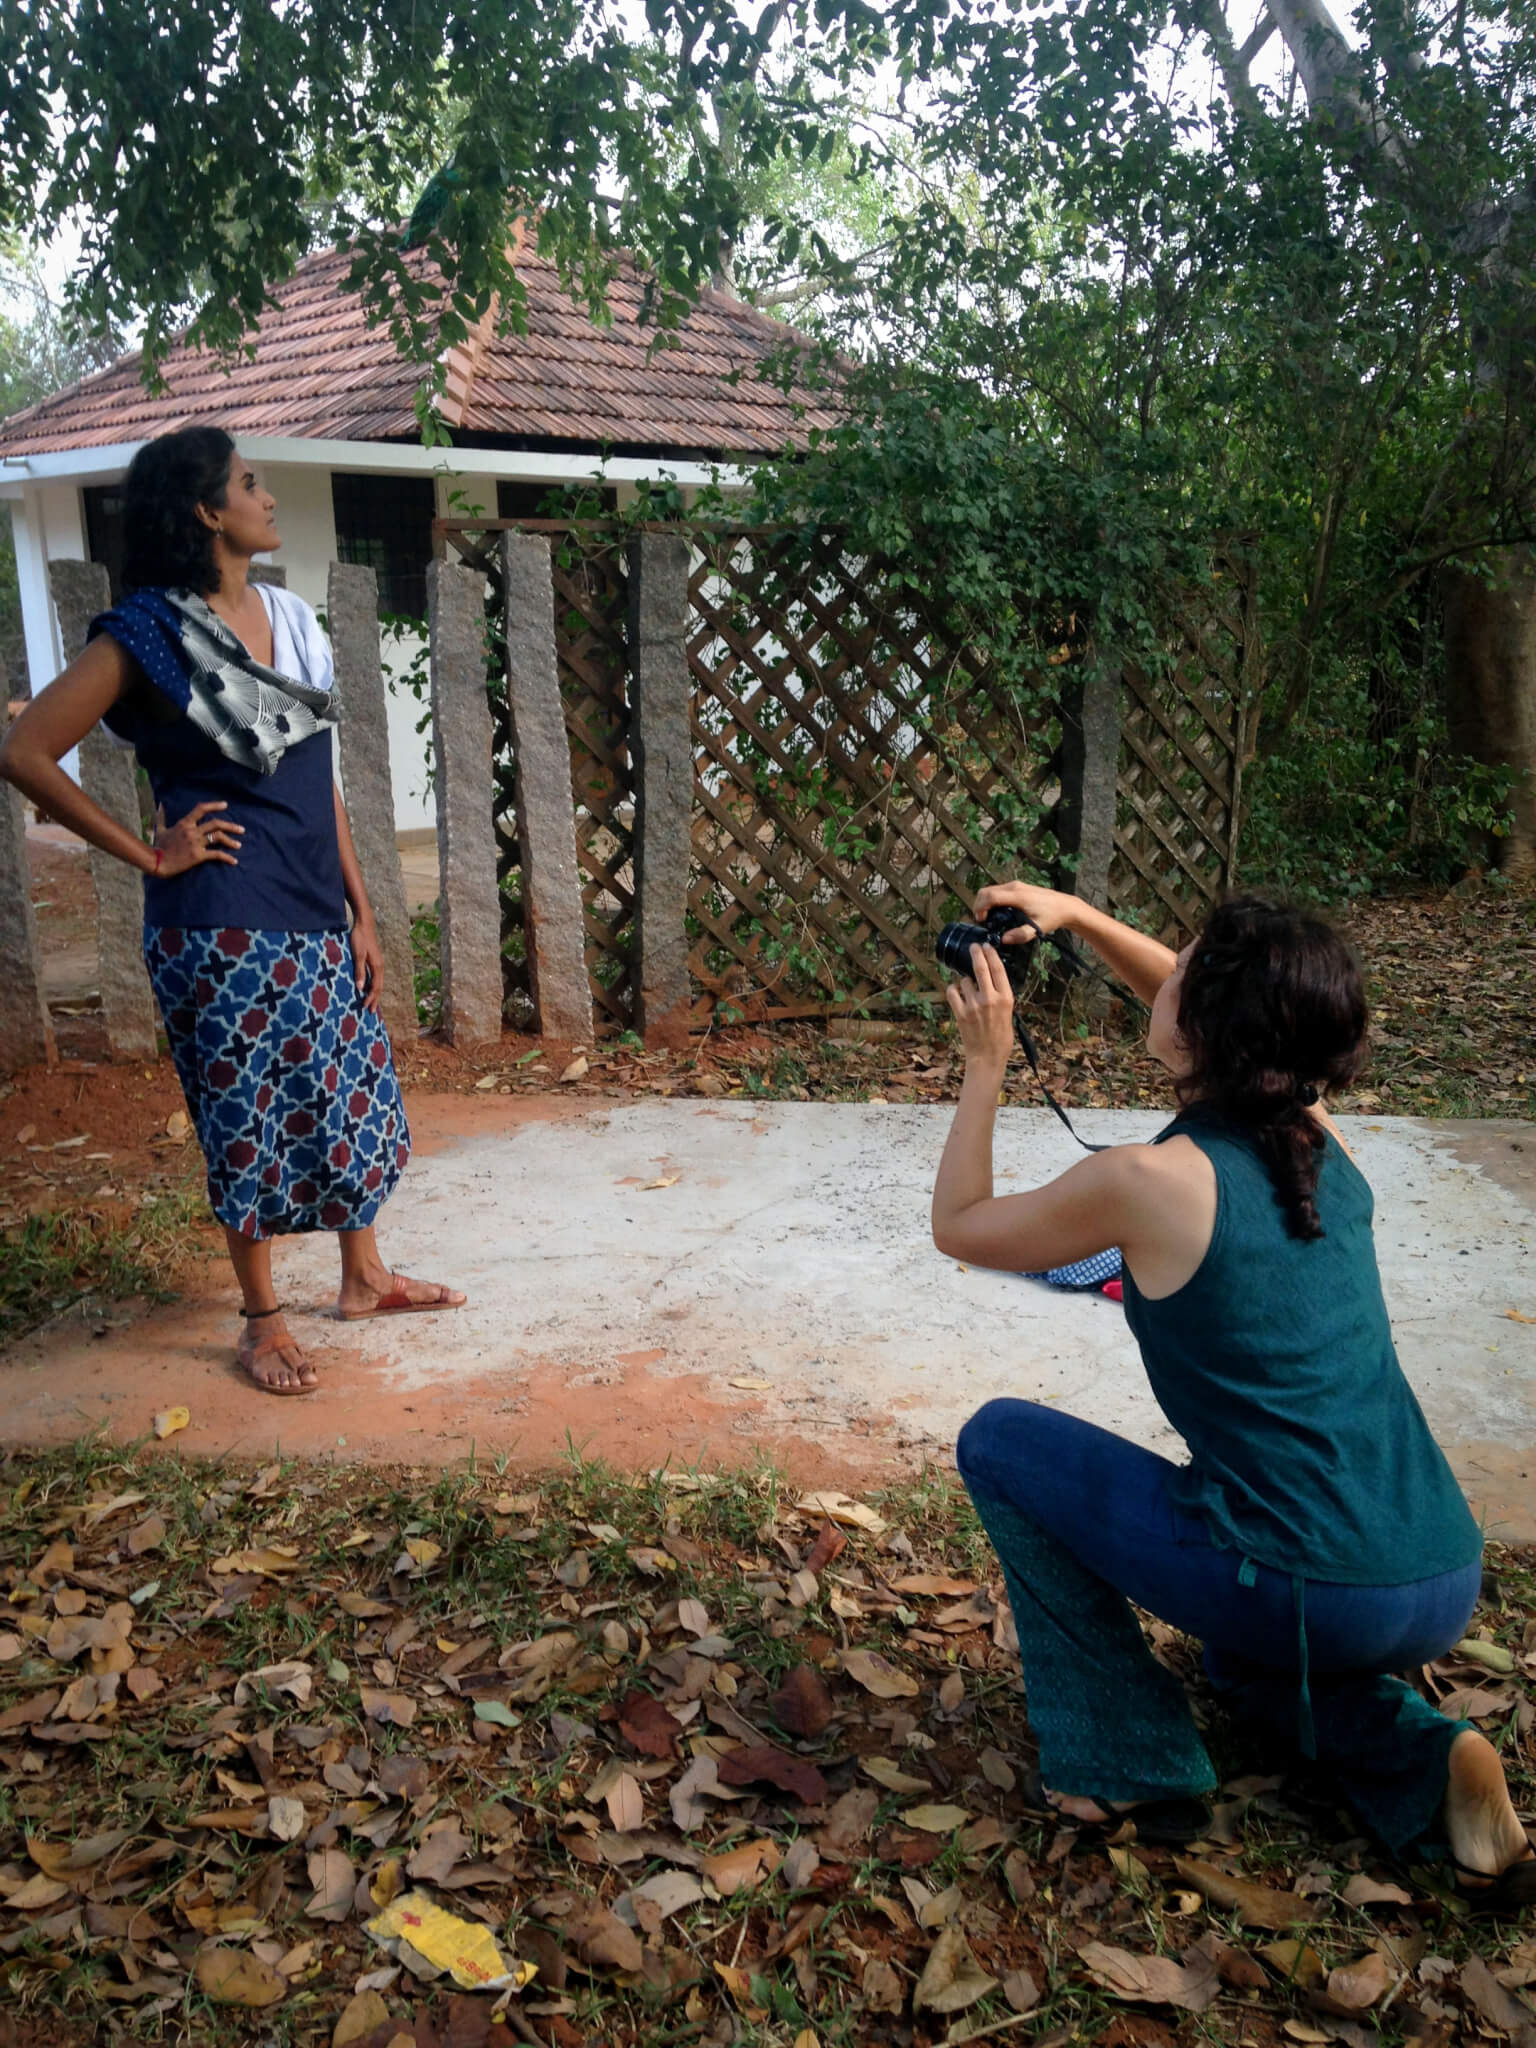 Melissa de valera at work at Takla Makan Photoshoot in Auroville